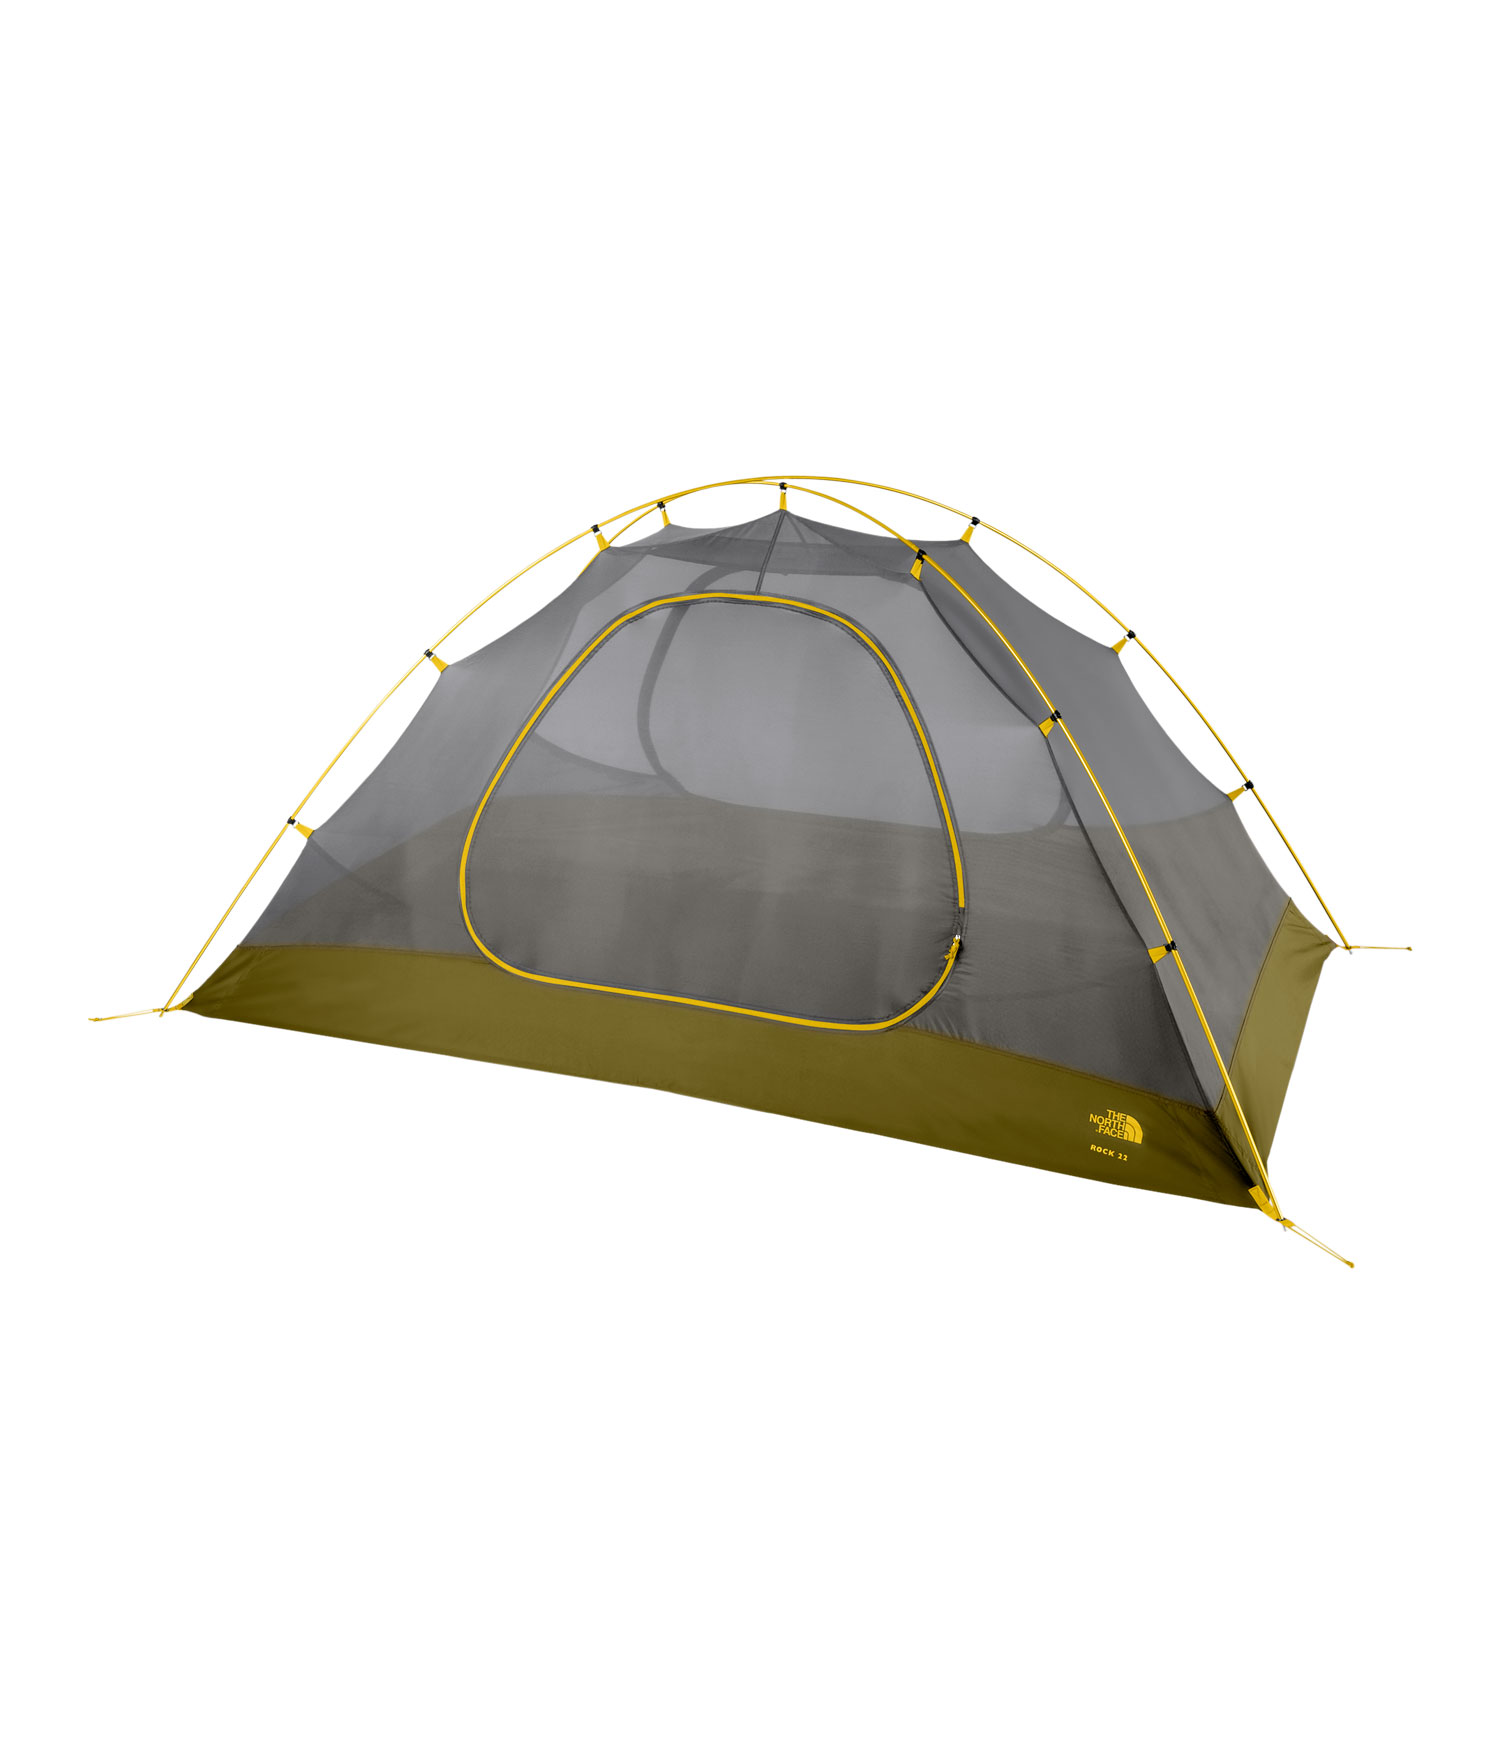 "Camp and Hike An updated, user-friendly X tent design, with increased vestibule size and more ventilation.Key Features of The North Face Rock 32 Bx 3 Person Tent Bamboo Green: Lightweight, easy to use clip system Comprehensive color-coded pitch Double door with two large vestibules Fully taped nylon bucket floor Convenient overhead pockets Abundant gear loops Innovative built in gear loft Durable steel stakes Capacity: 2 Trail weight: 5lbs 3oz Floor area: 33.6 ft2 Vestibule area: 4.7 ft2 Fabric: Fly: 75D 190T polyester taffeta, 2.3 oz/yd2, 1500mm PU coating, water-resistant finish/Canopy: 40D nylon ""no-see-um"" mesh/Floor: 70D190T nylon taffeta, 2.4 oz/yd2 , 5,000mm PU coating, water-resistant finish - $155.95"